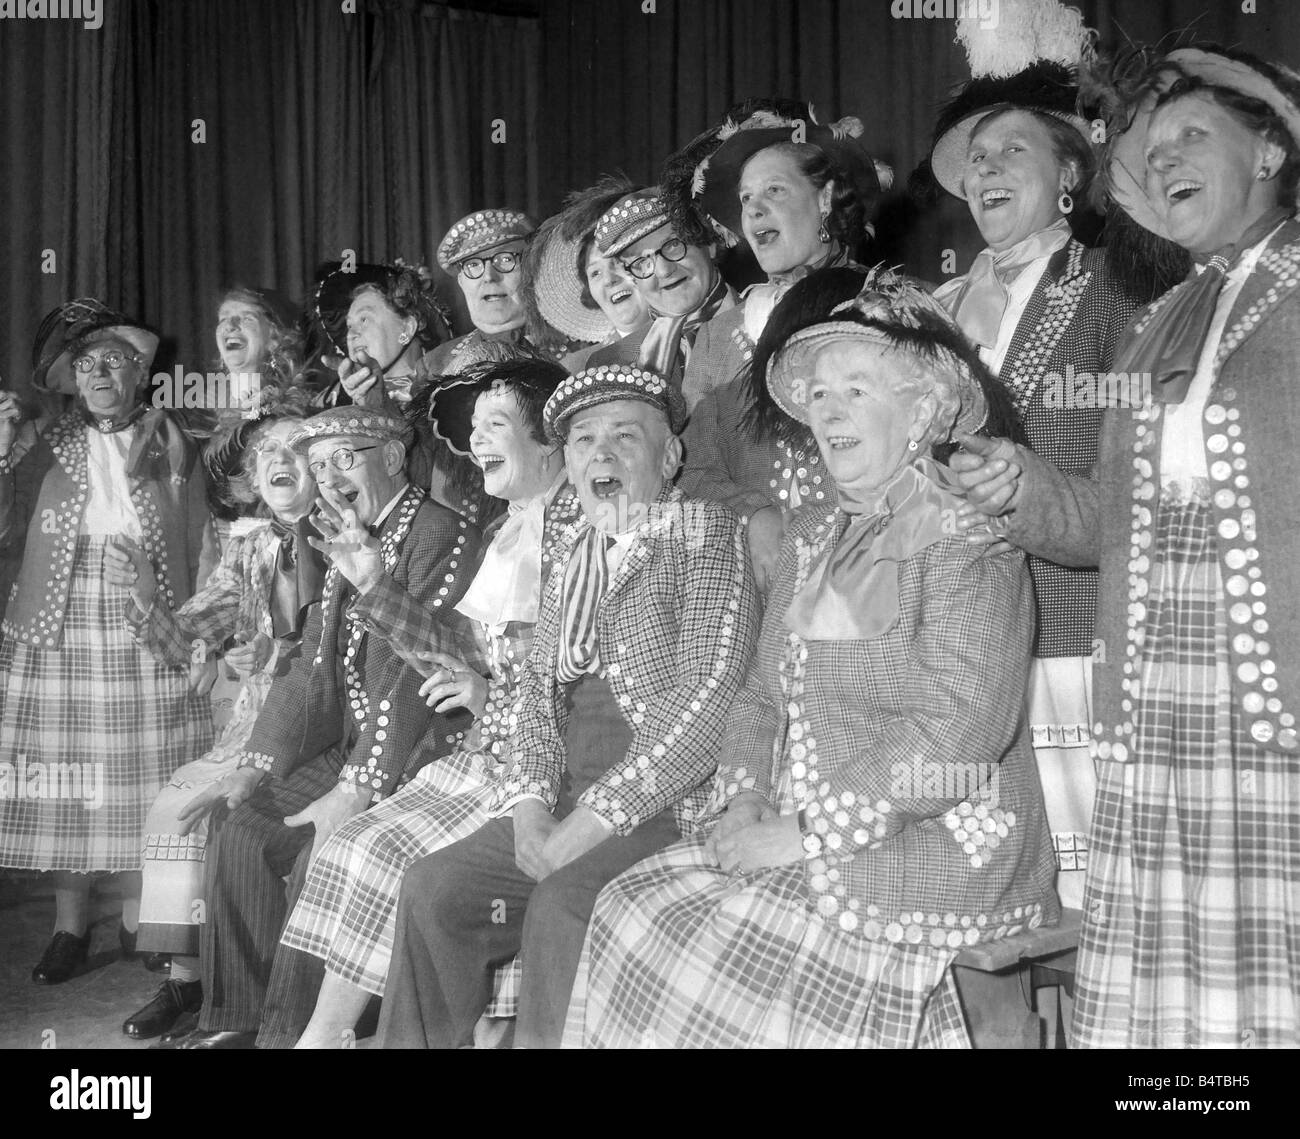 Pearly kings and queens singing during a concert - Stock Image